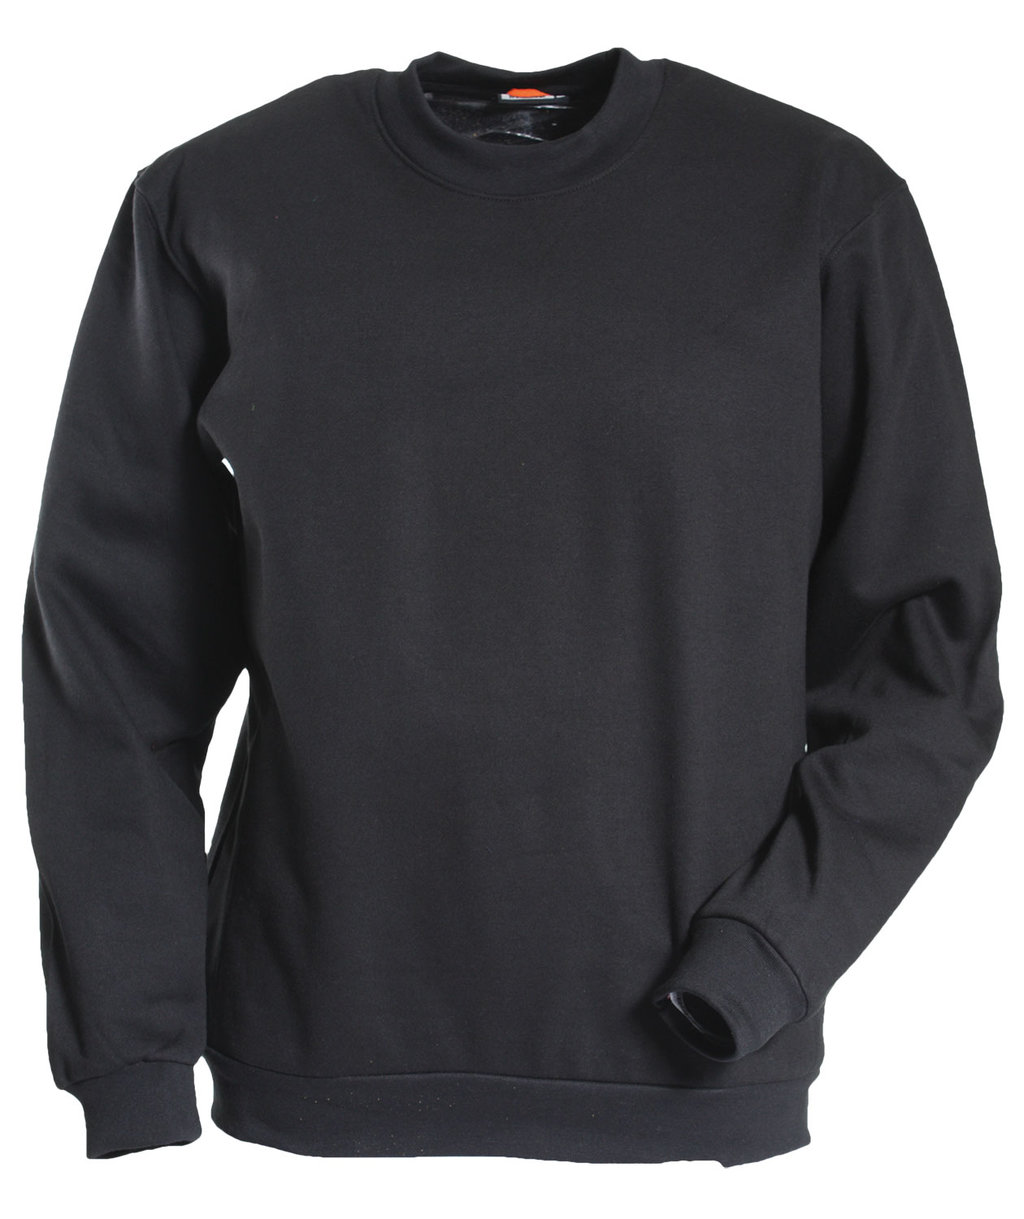 Tranemo sweatshirt, Black